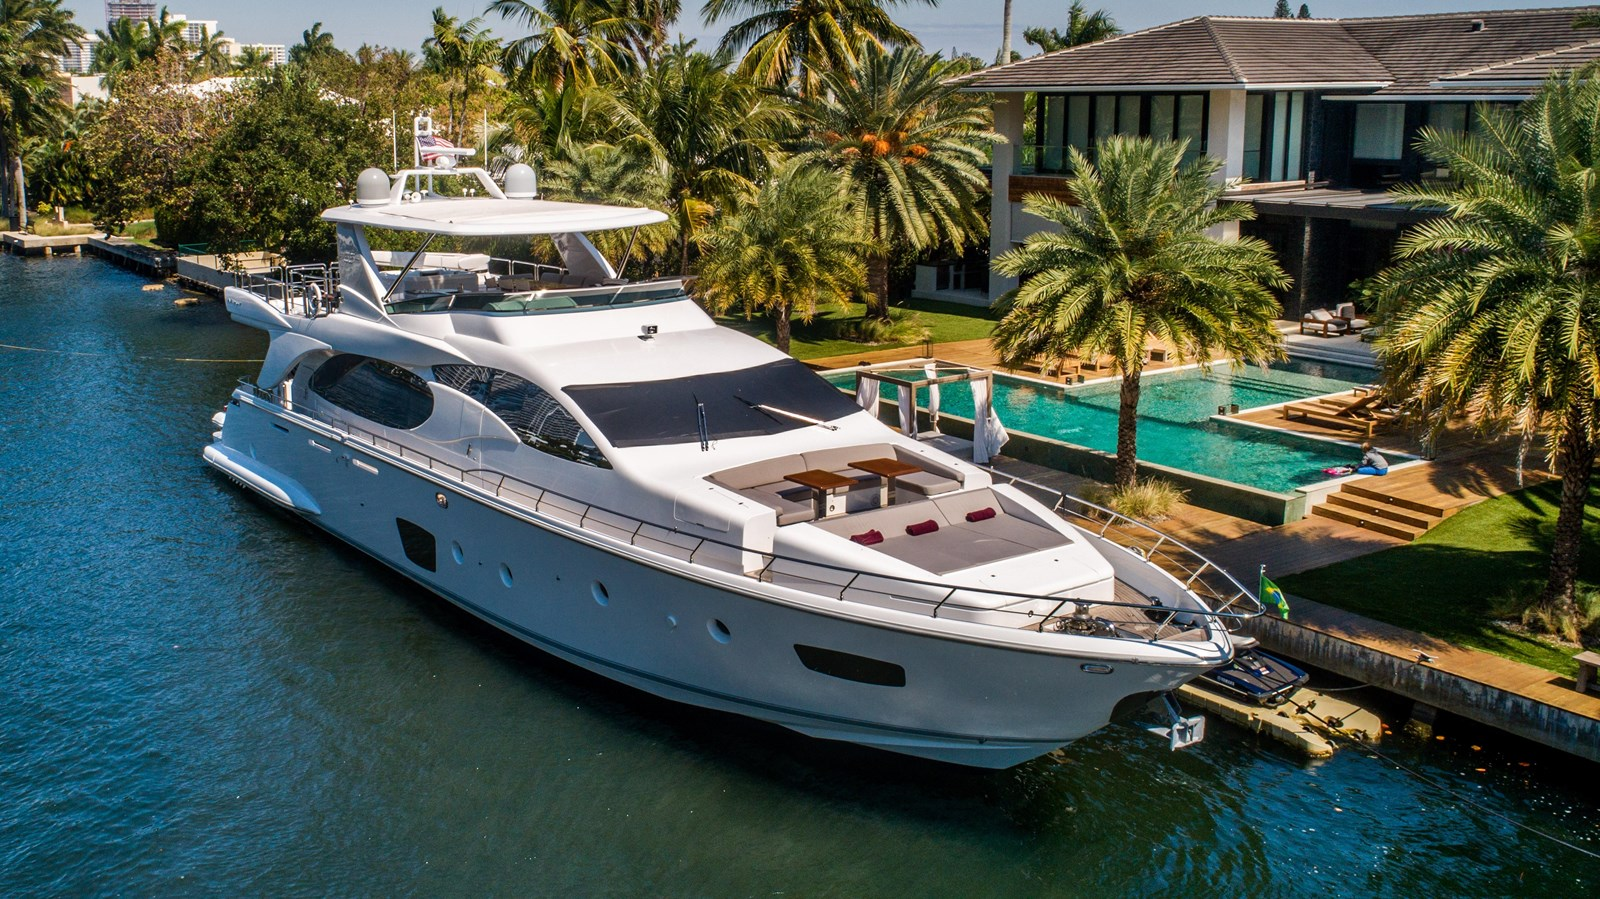 Blue yacht for sale